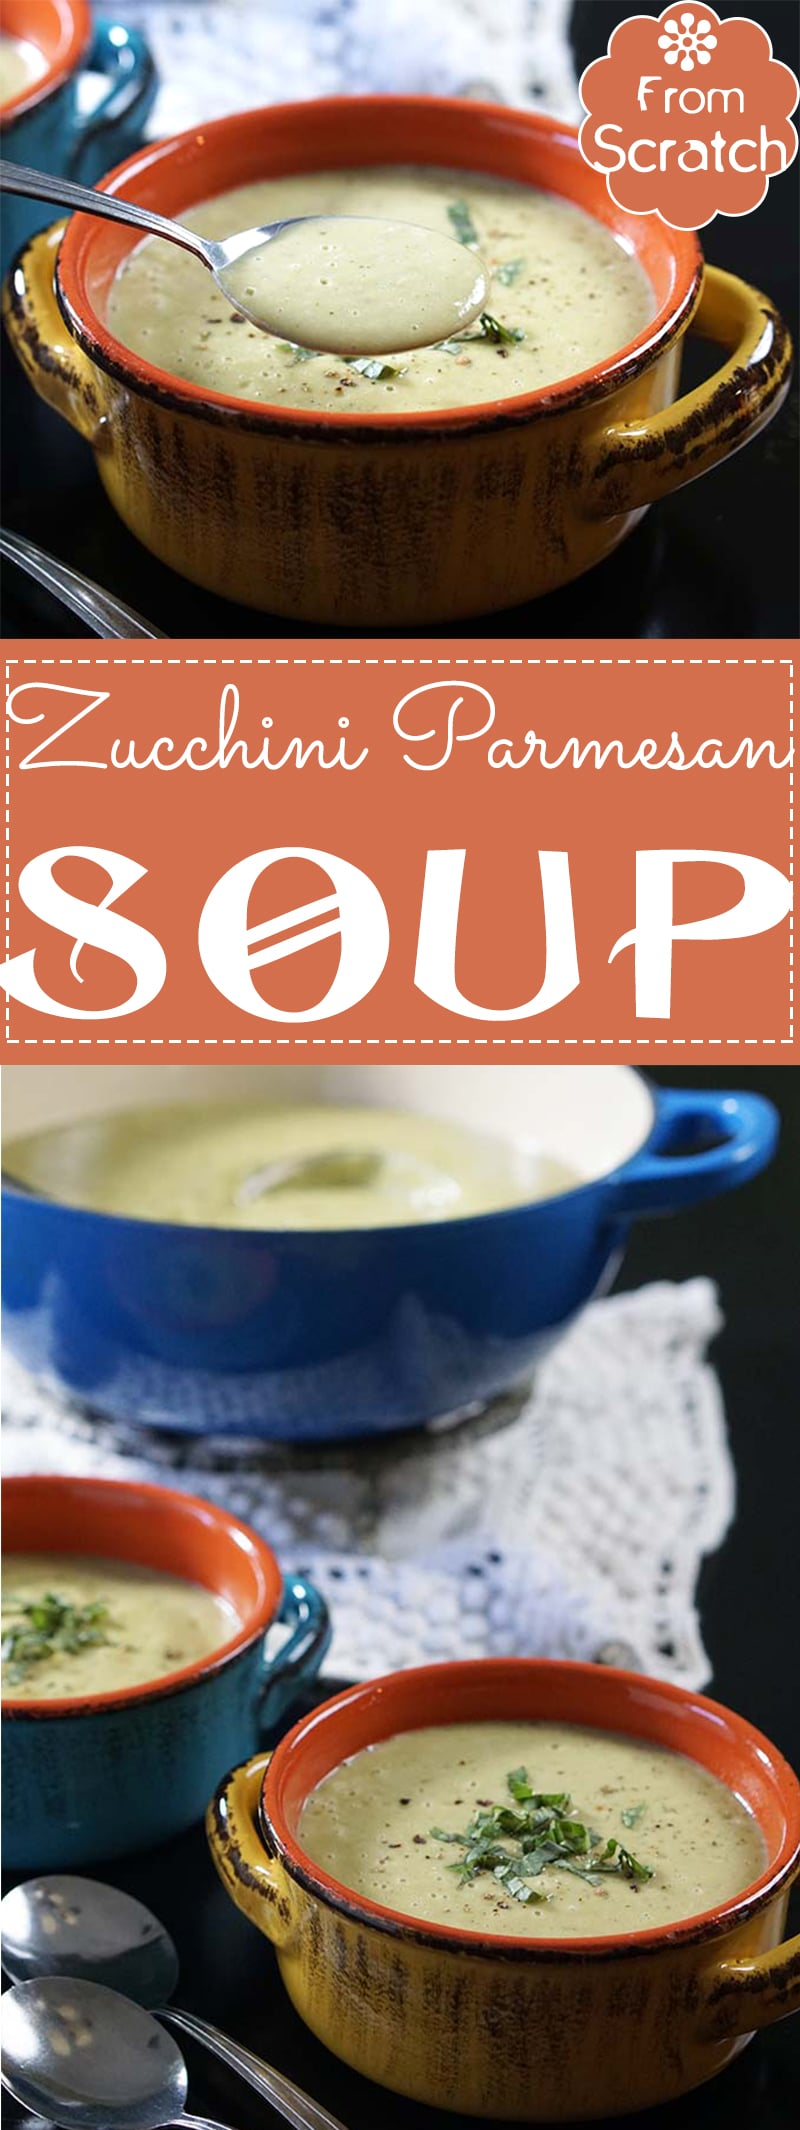 A hearty zucchini Parmesan soup made with fresh zucchini. Its a hearty and warm soup that you can curl up with in front of the fire.